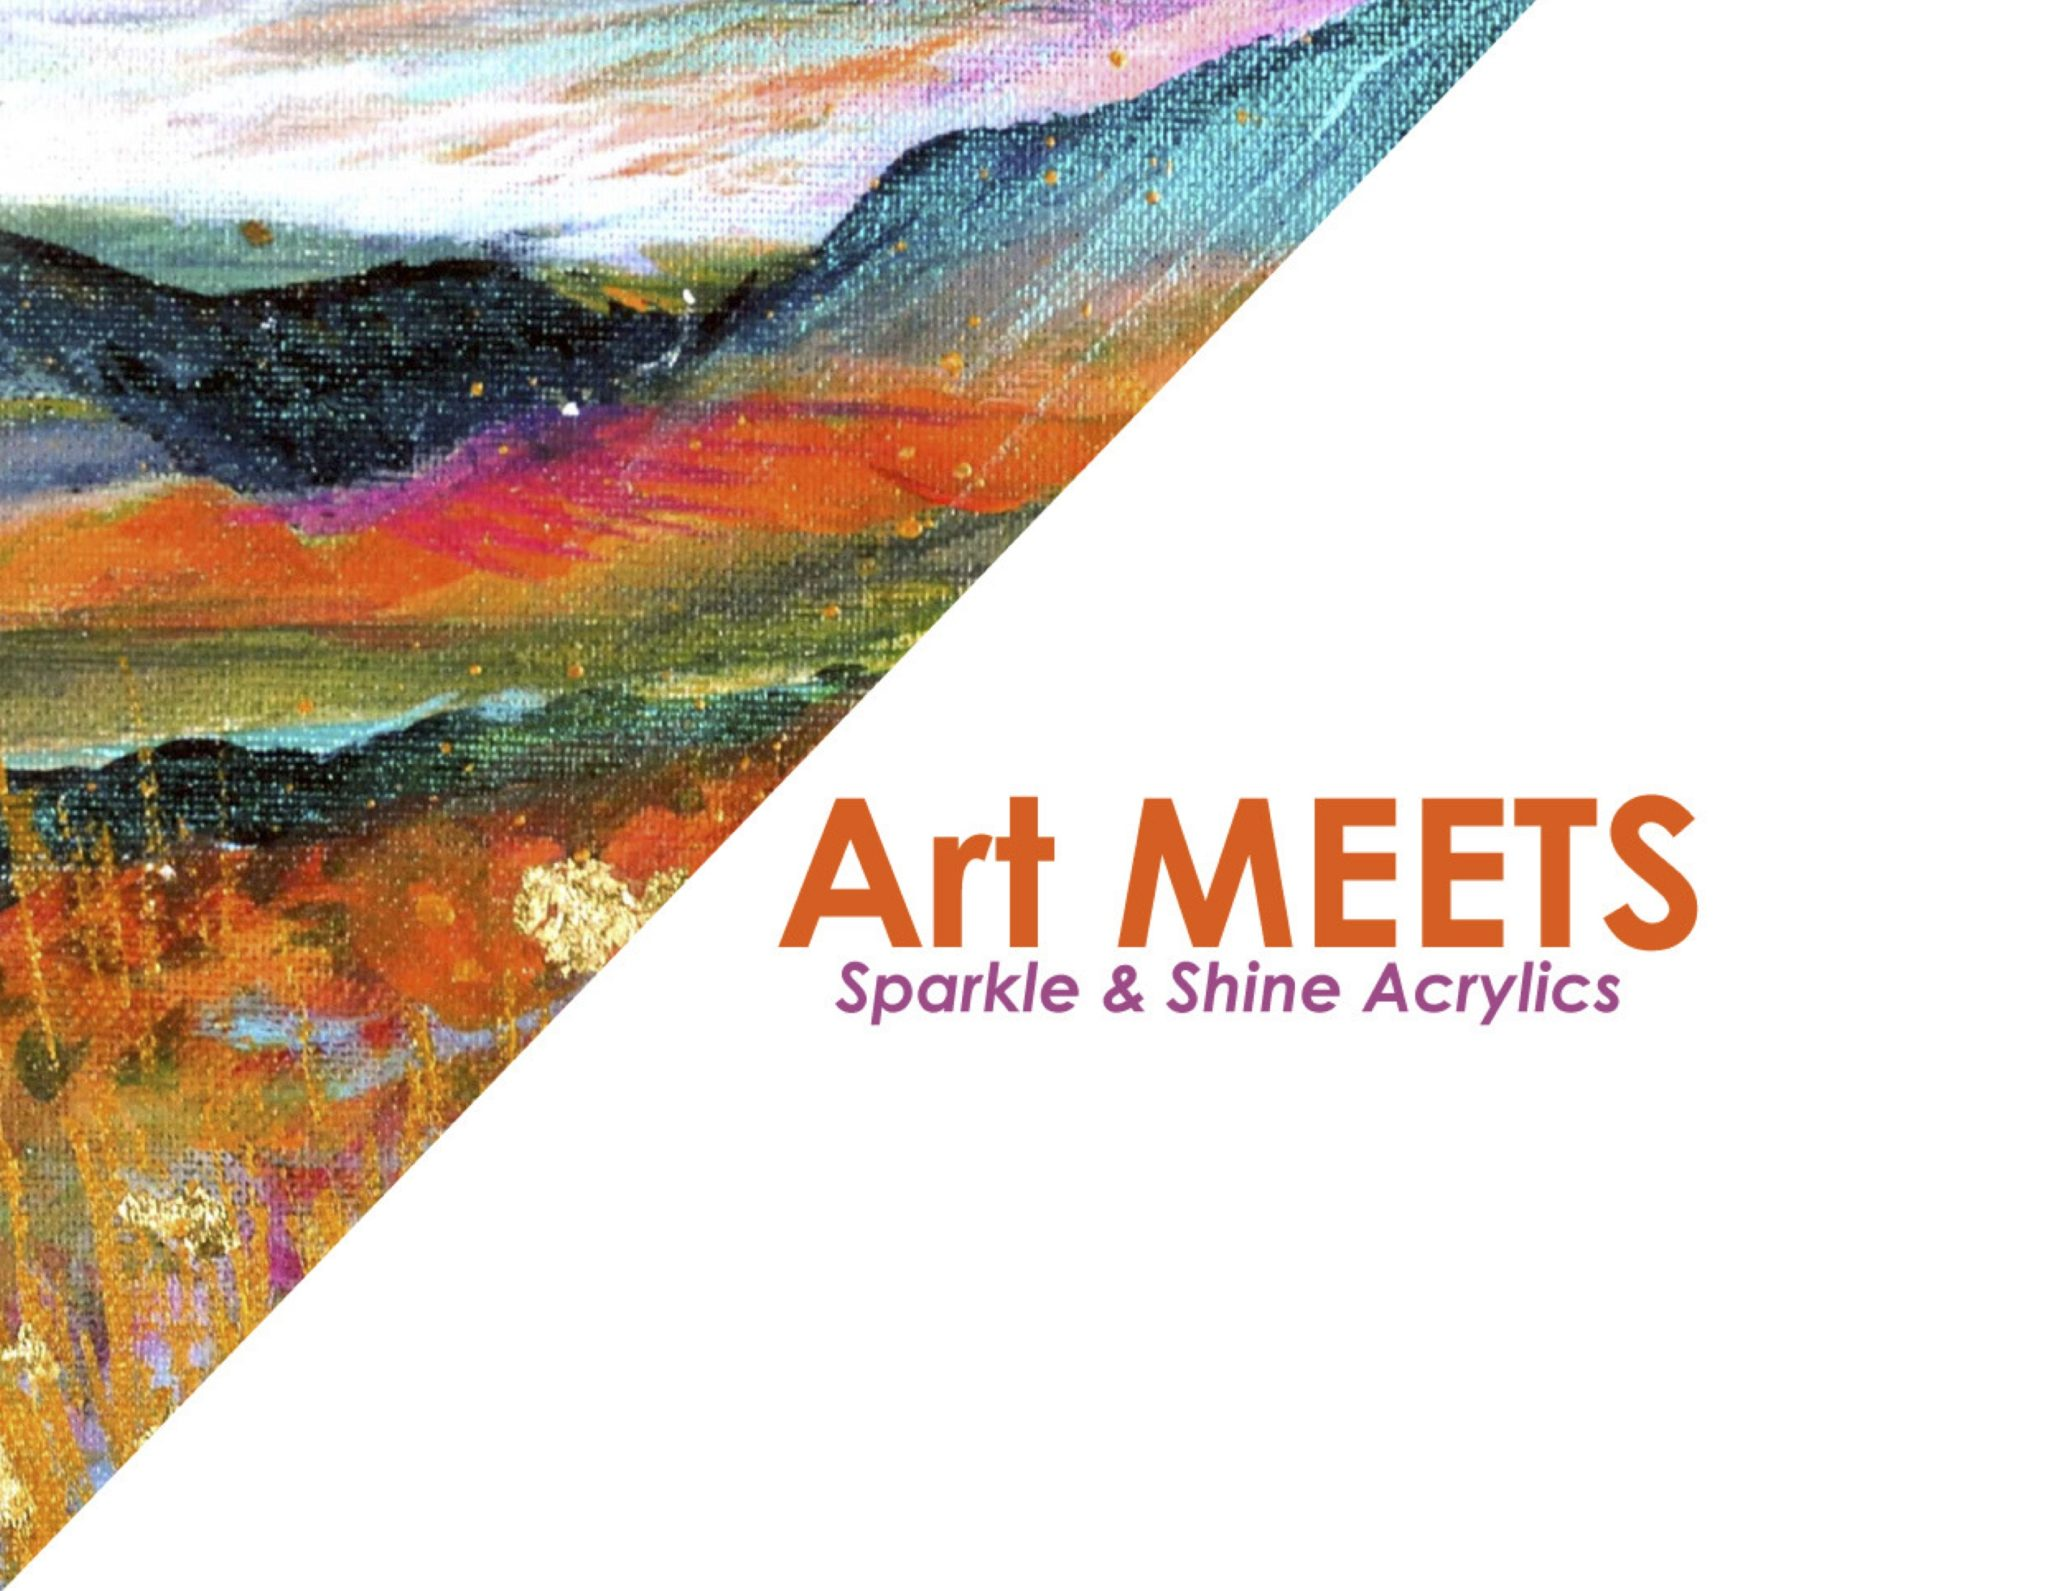 Art MEETS: Sparkle & Shine Acrylics